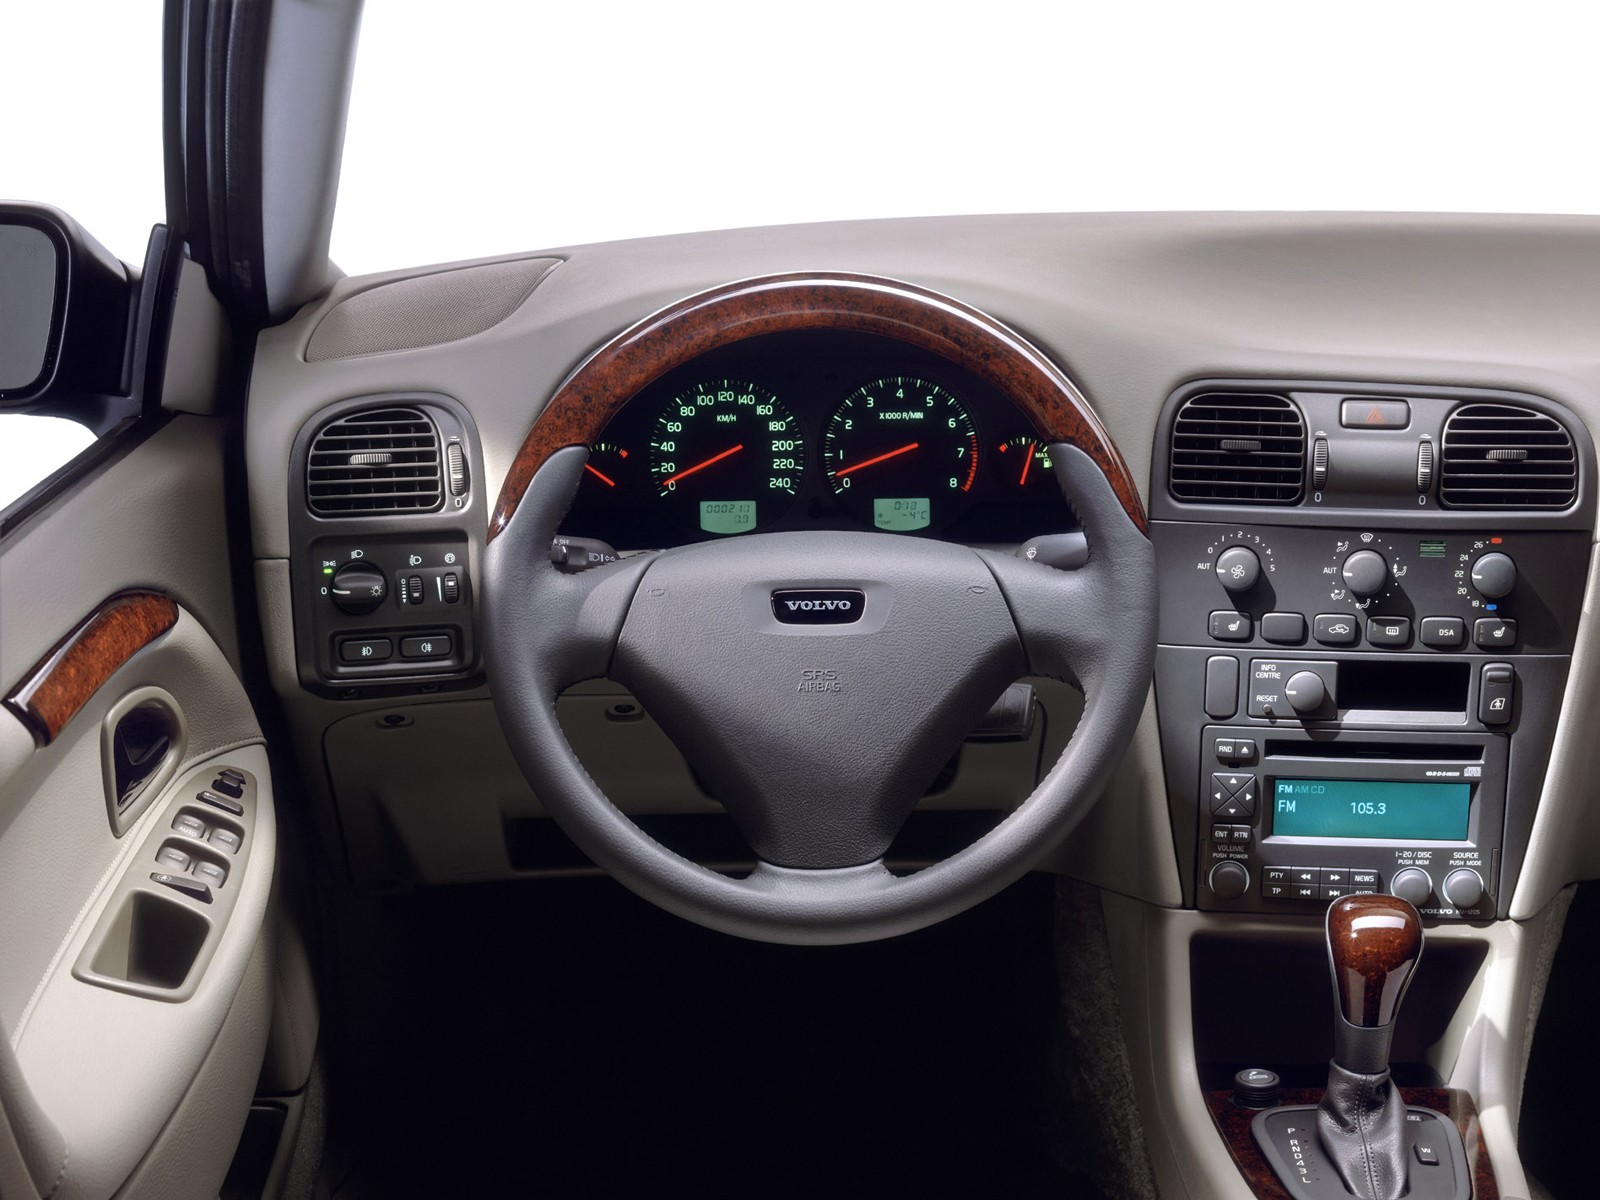 Chwalebne 1995 Volvo S40 (vs) – pictures, information and specs - Auto UU62